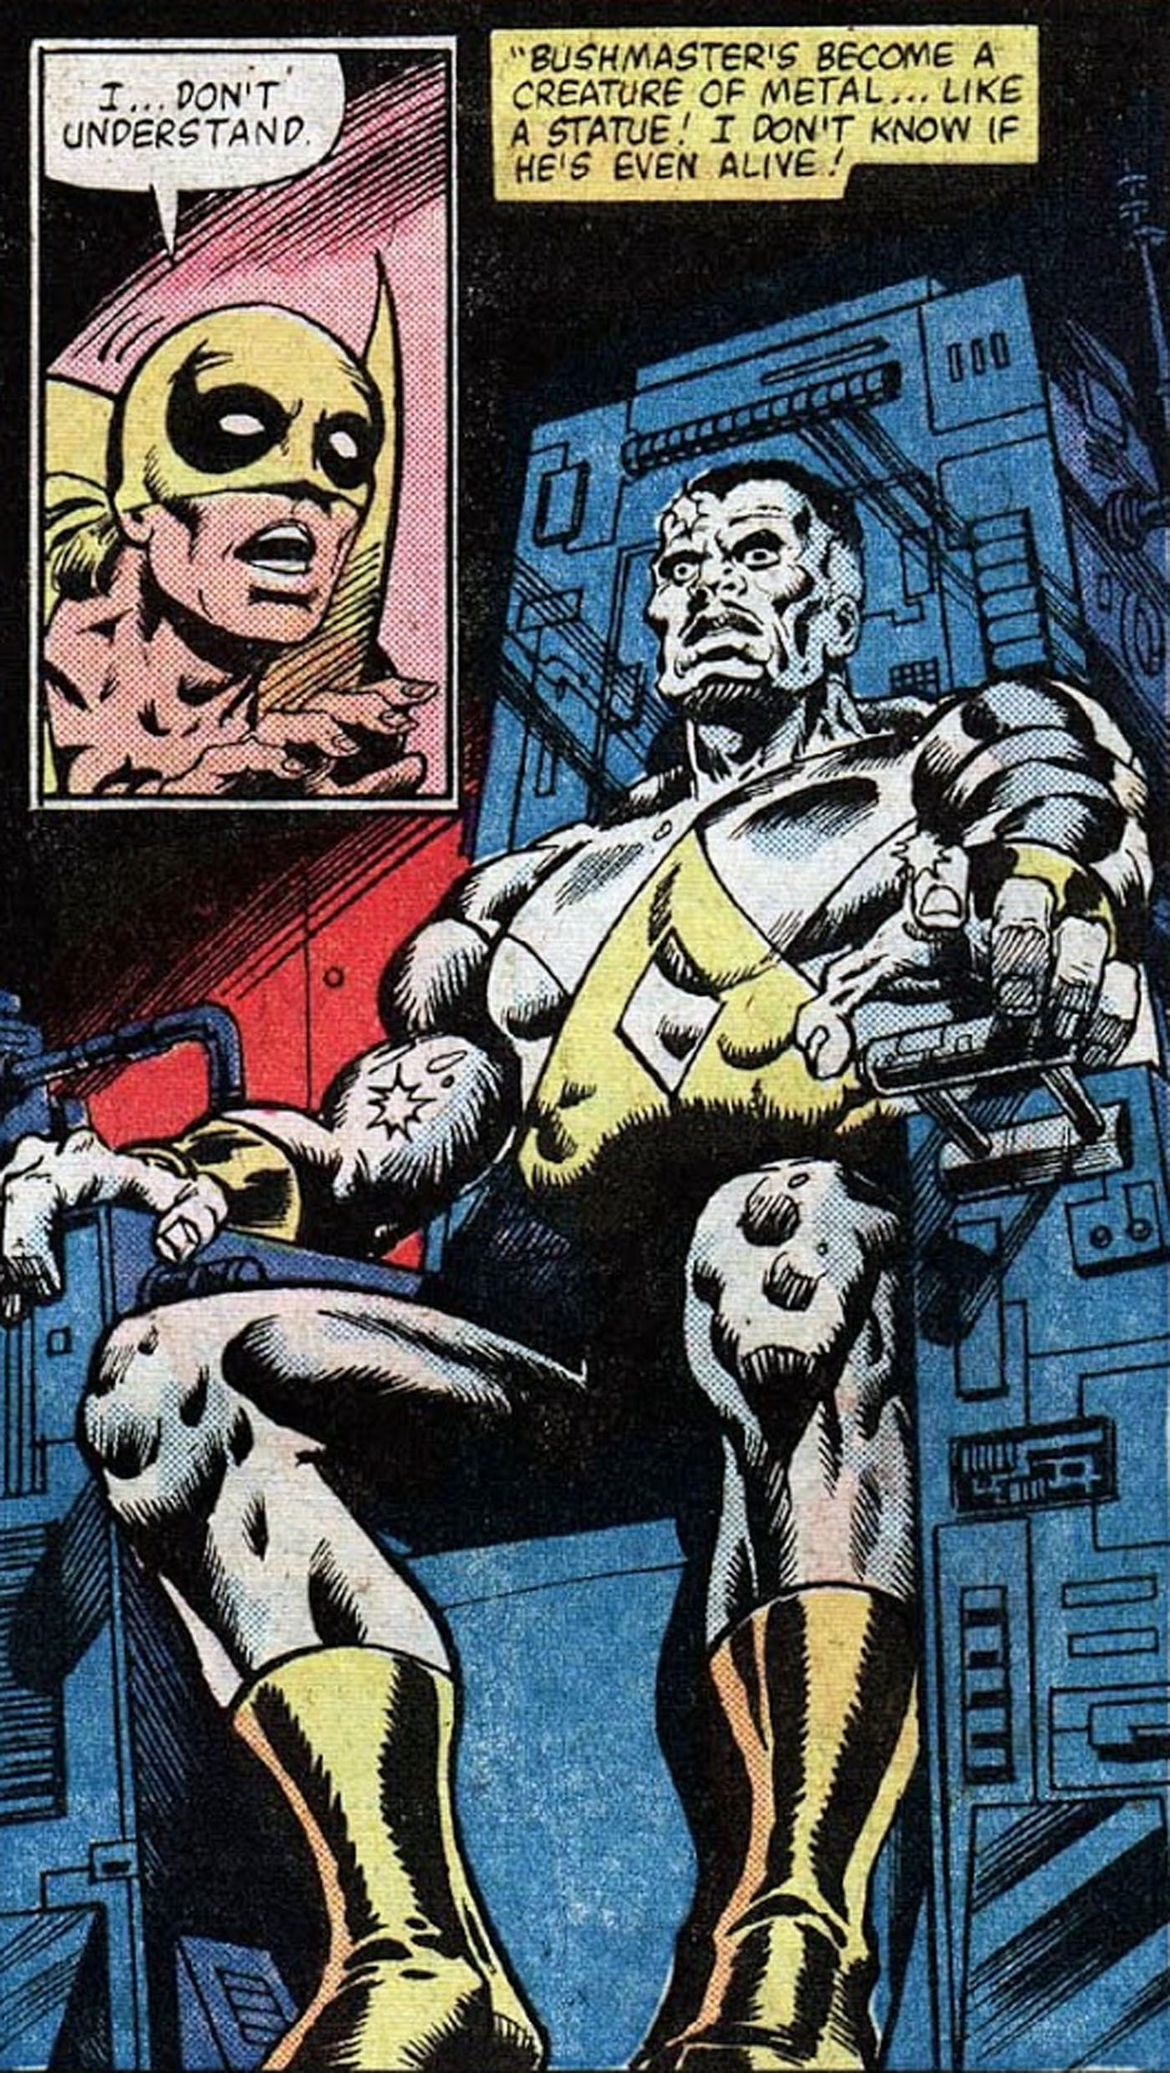 Who is Bushmaster  A guide to Luke Cage Season 2 s new villain Who     Who is Bushmaster  A guide to Luke Cage Season 2 s new villain Who is  Bushmaster  A guide to Luke Cage Season 2 s new villain   SYFY WIRE